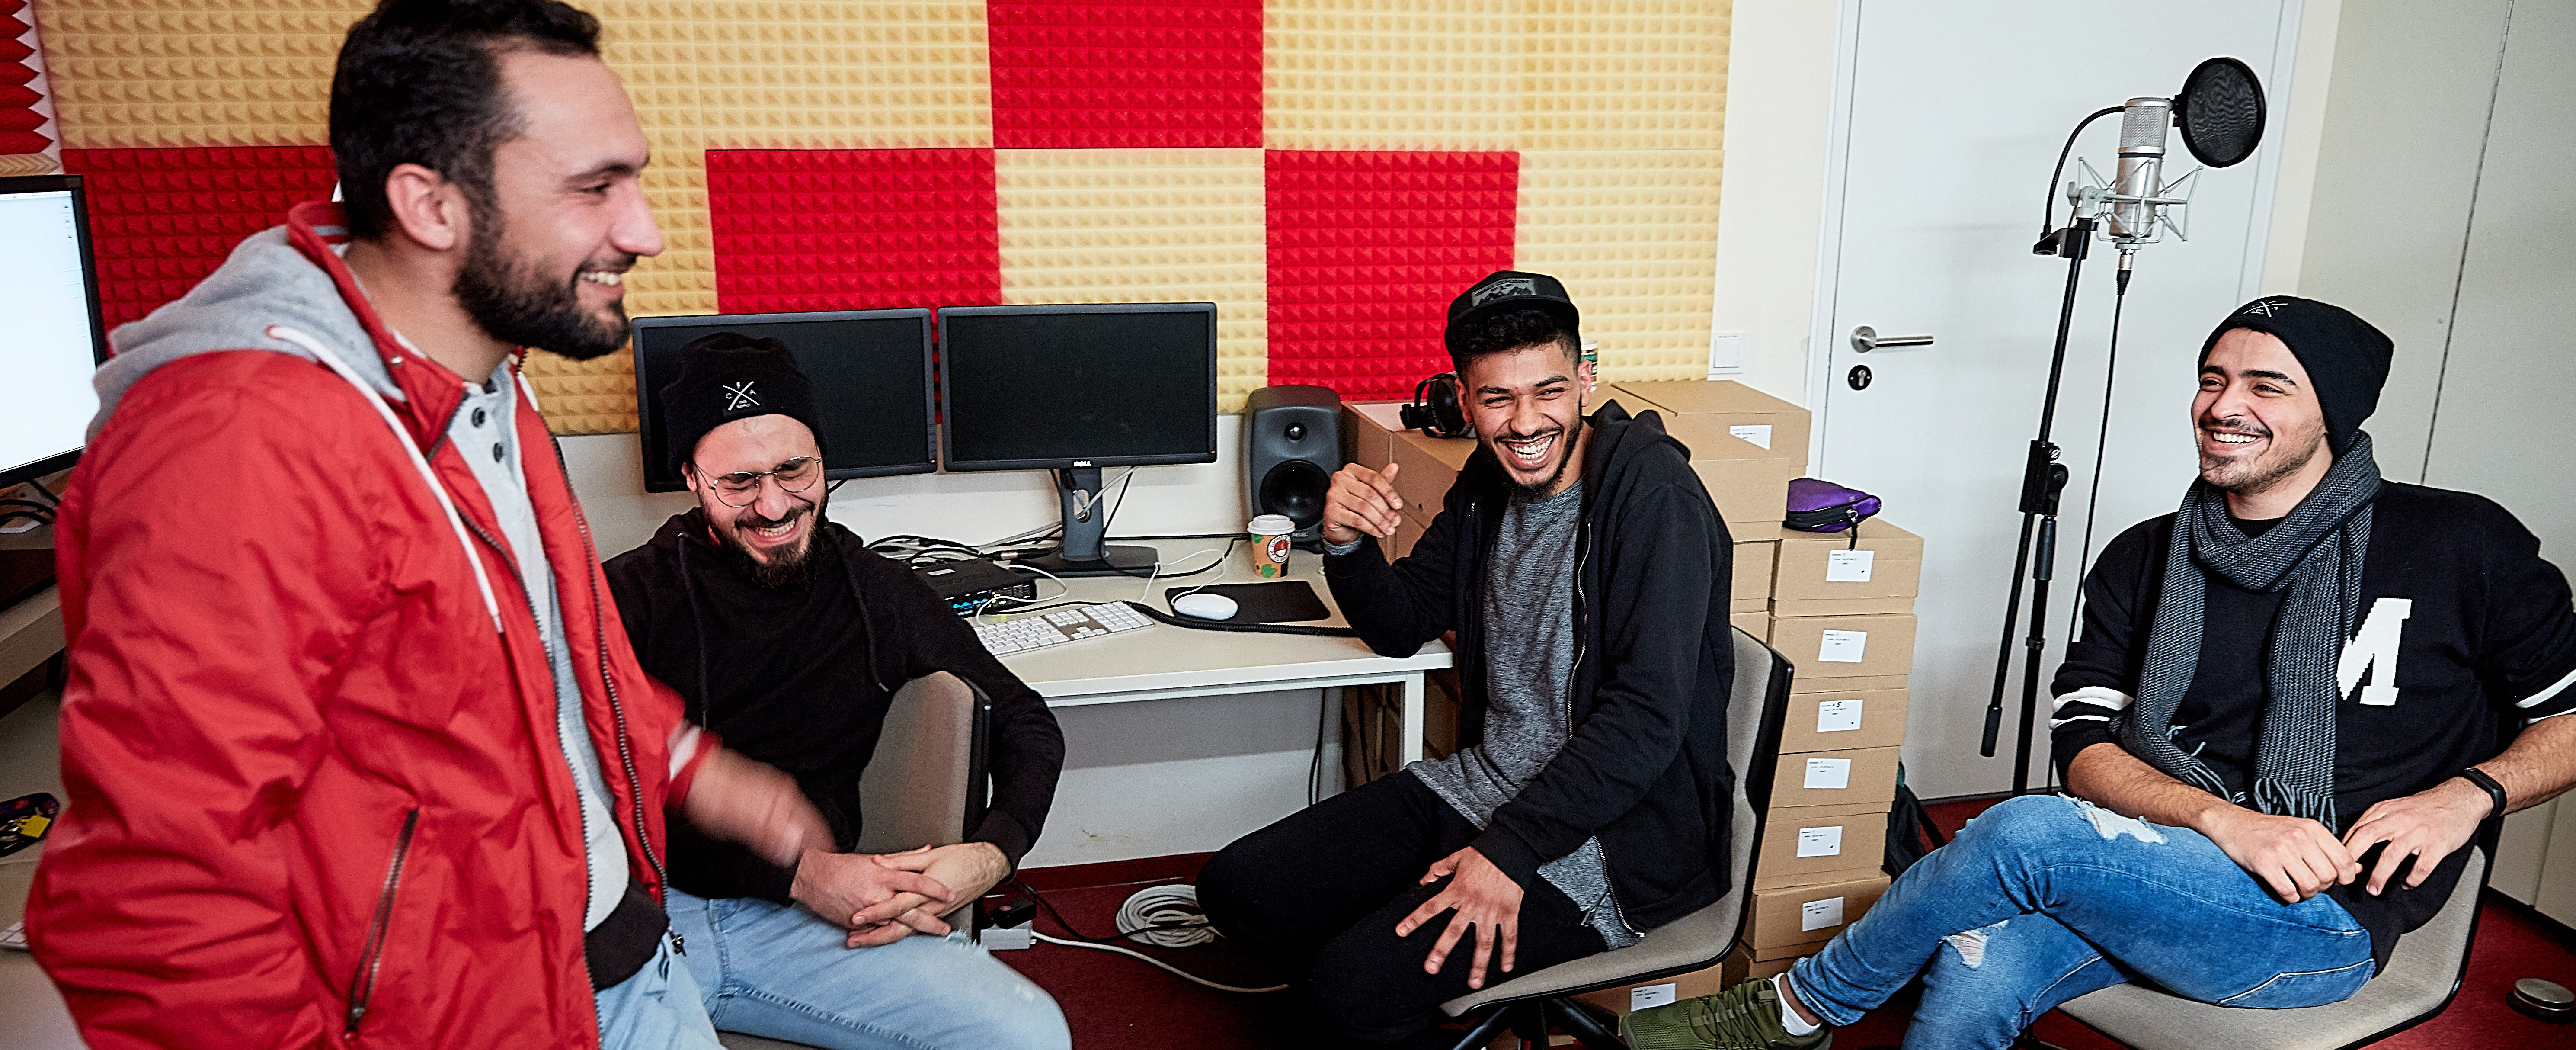 Objects Association For L Formed Computer Desk (Lu2013R) Mohamed Alhalabi, a Syrian refugee now studying at Berlinu0027s  University of the Arts, in a university recording studio with friends from  Damascus; ...